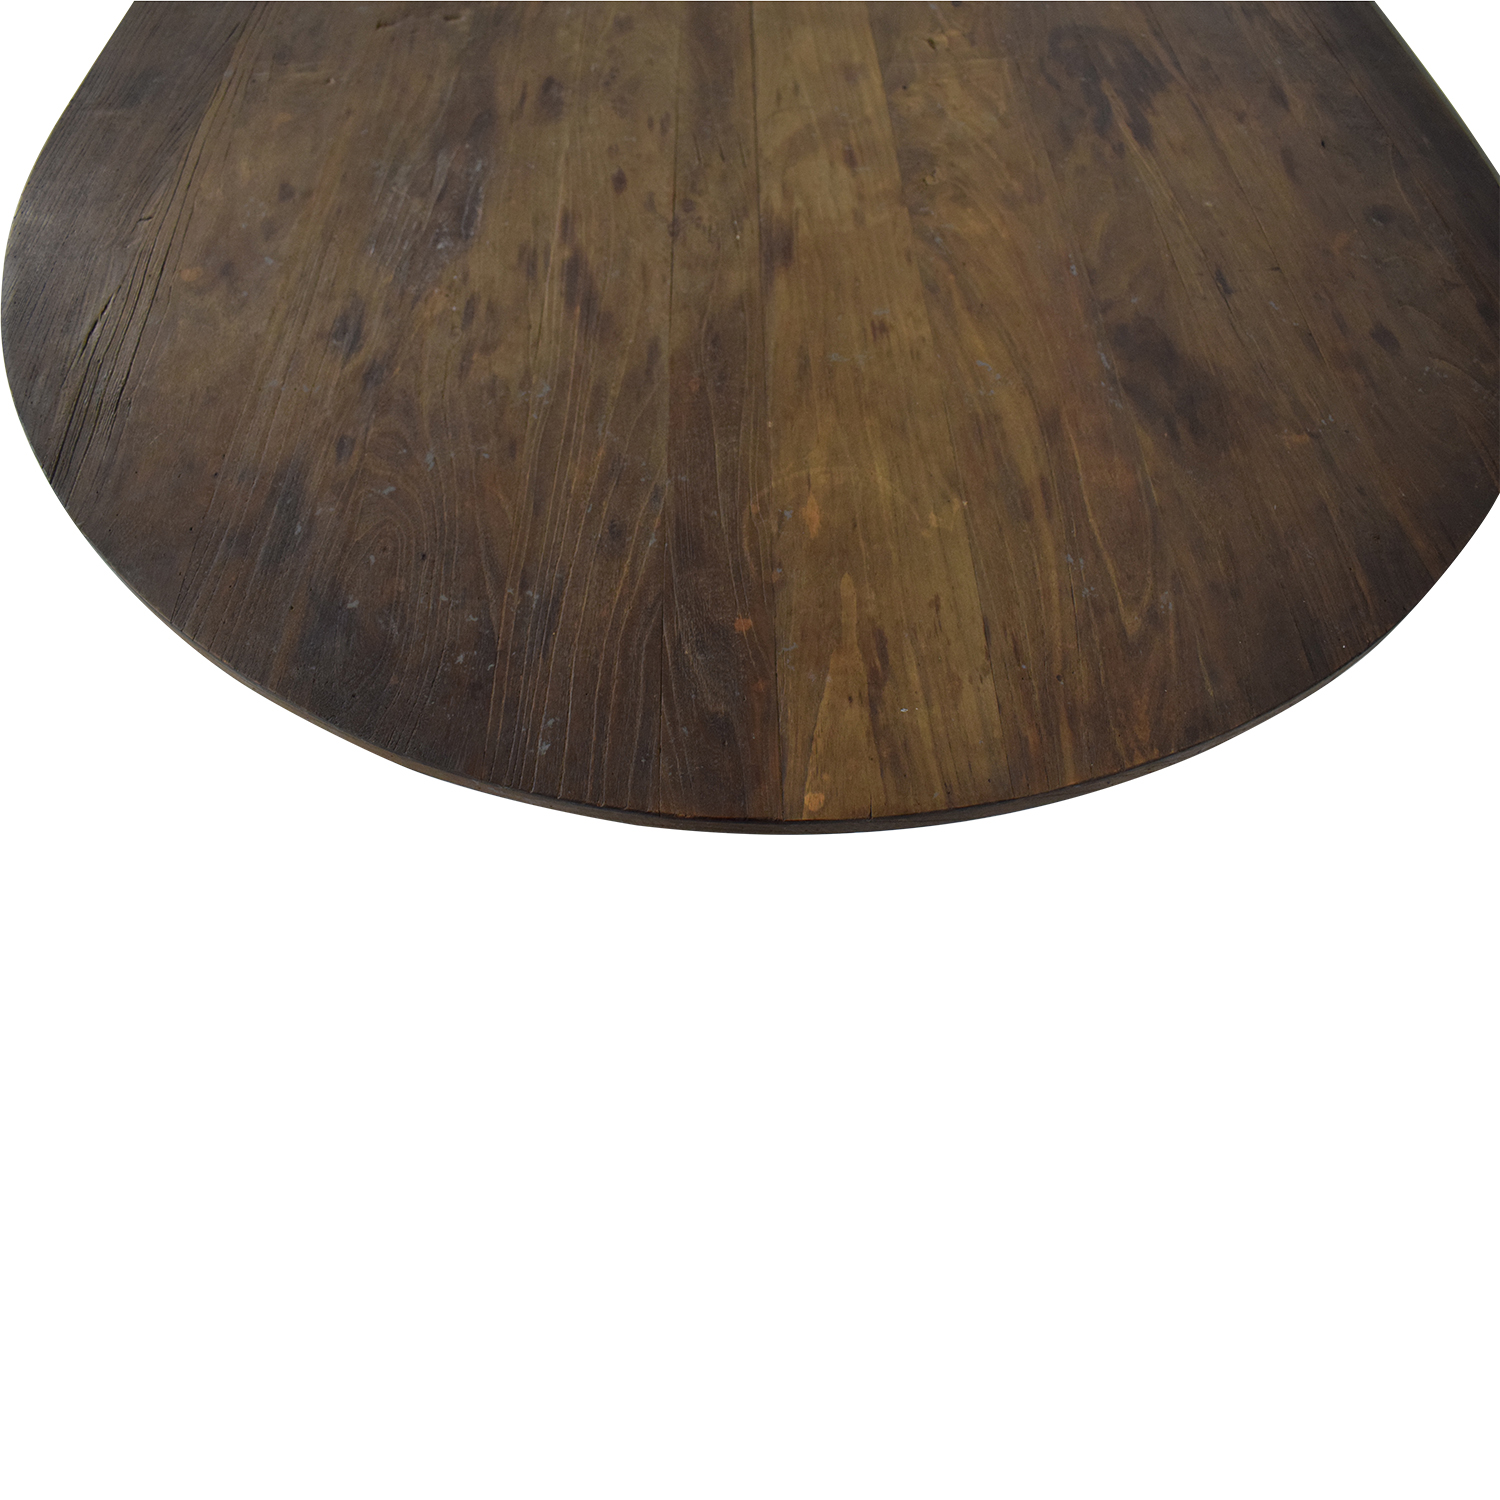 ABC Carpet & Home ABC Carpet & Home Dining Room Table coupon